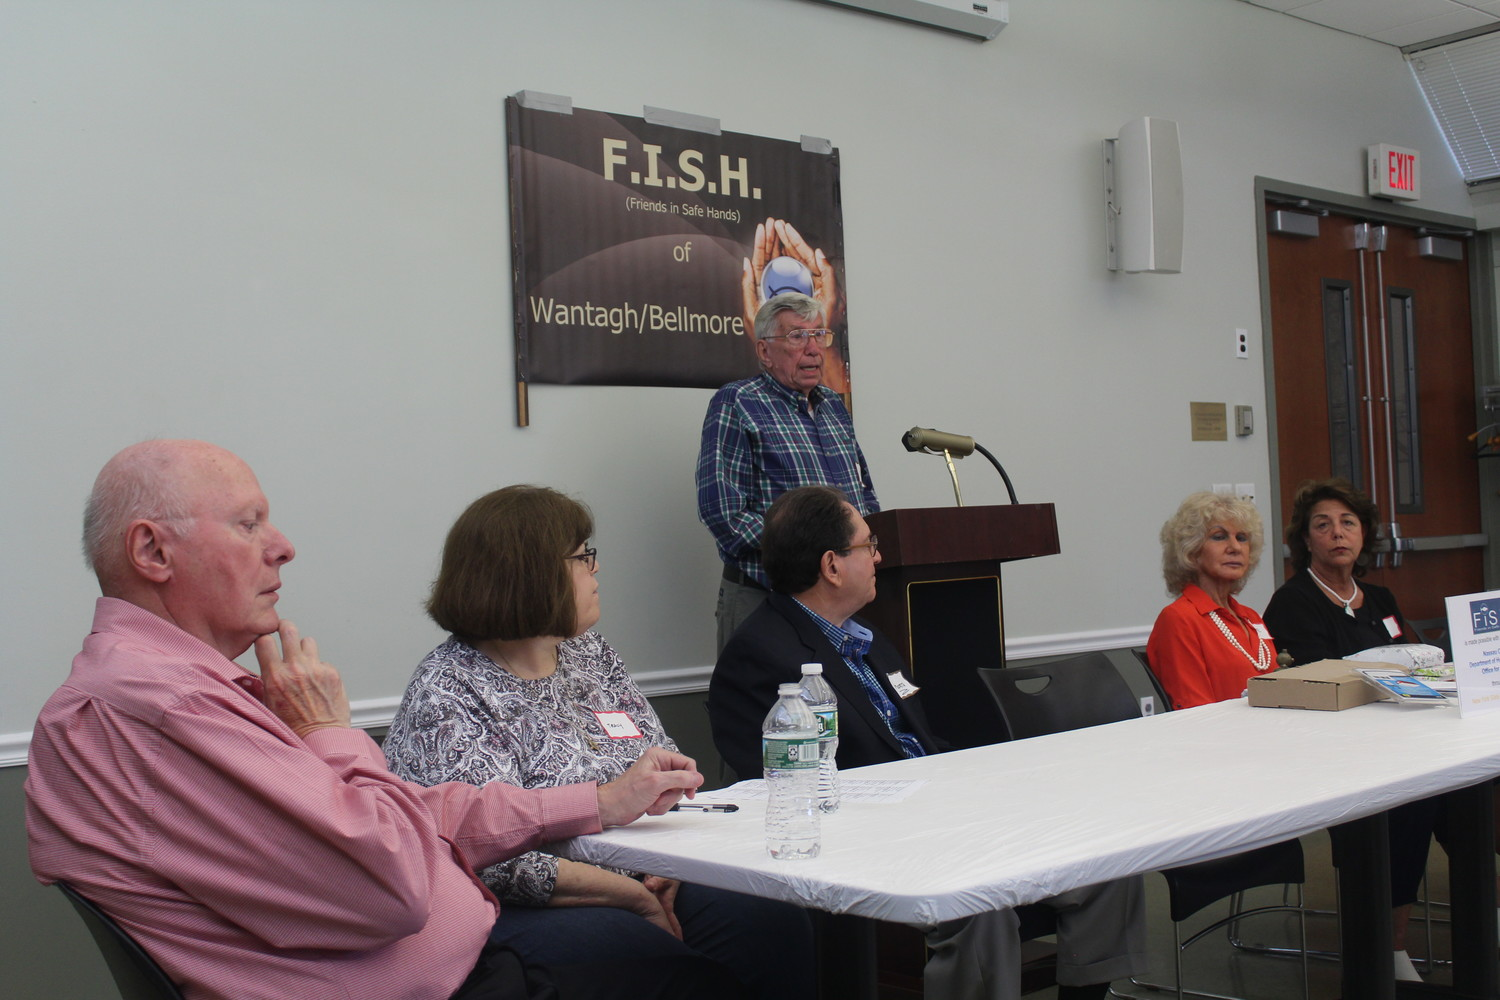 Paul Desroches, Director of the FISH of Wantagh, addressed his fellow volunteers at the podium during the group's annual business meeting on May 26.